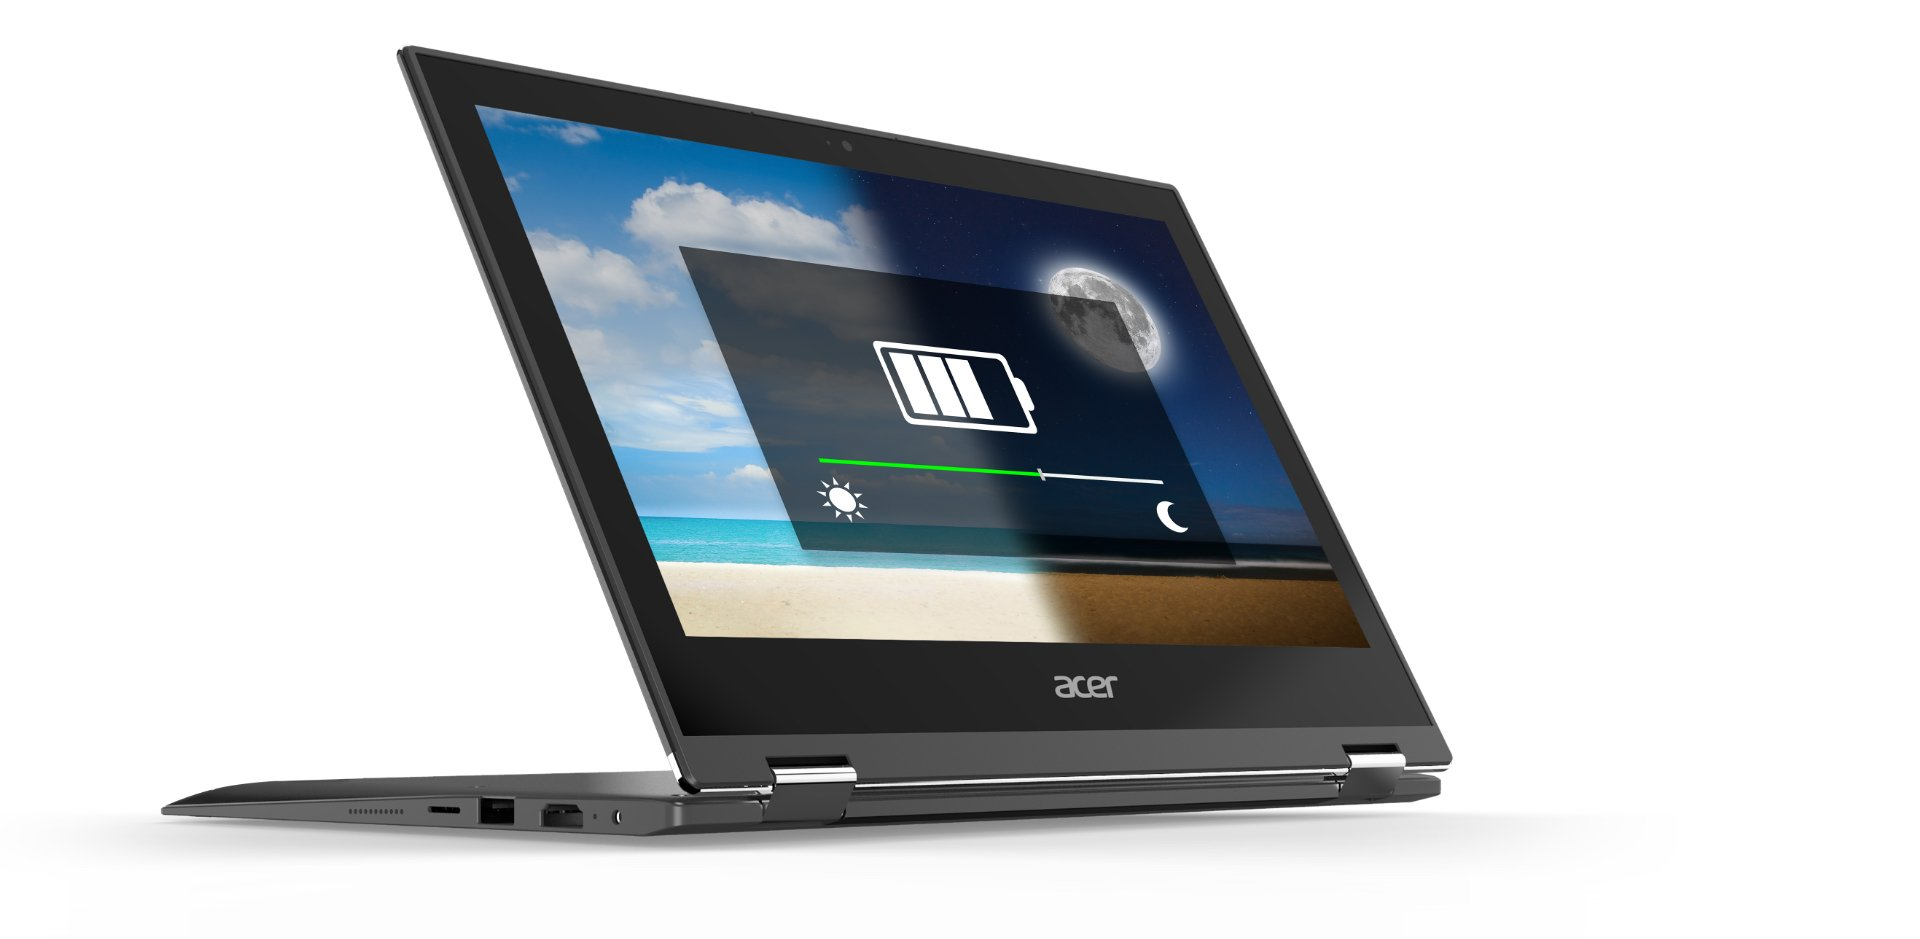 Acer Spin1 Long battery life